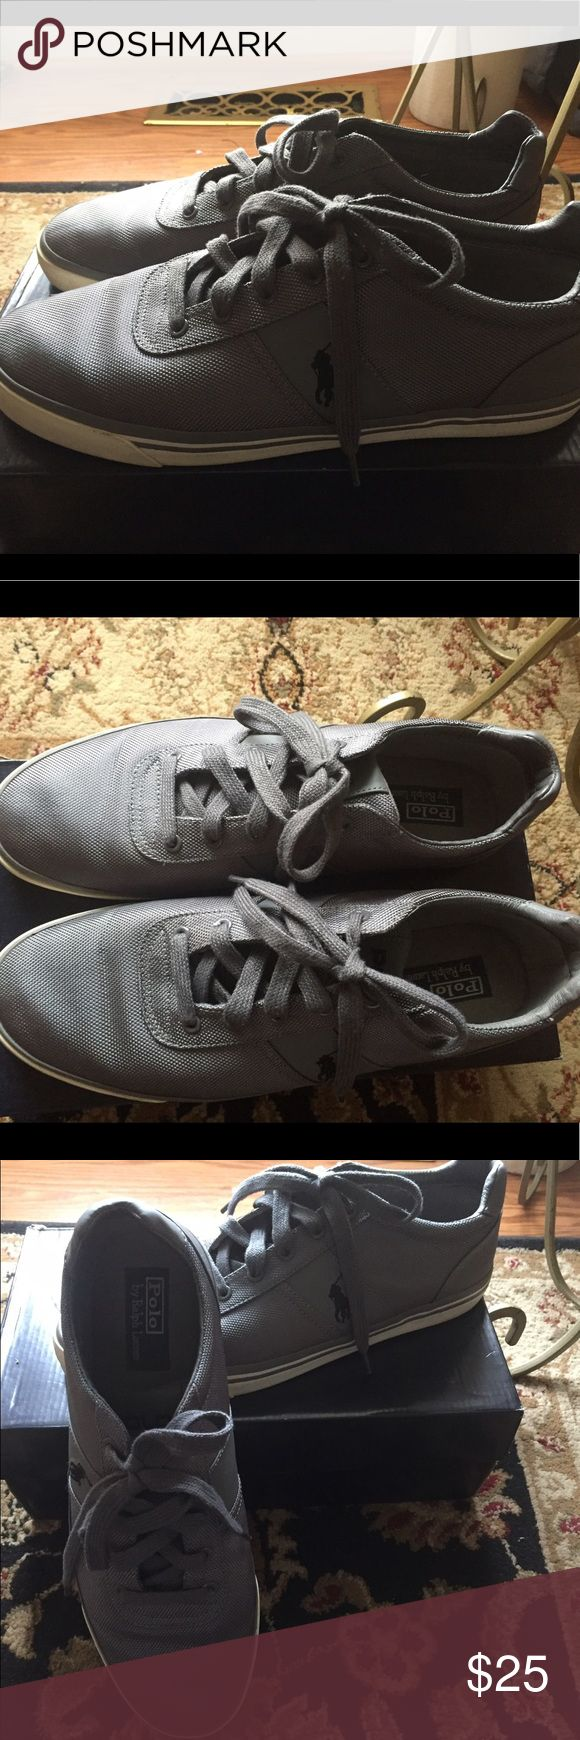 Polo Ralph Lauren Men's Shoe Size 12 Like New Polo Ralph Lauren Men's Shoe Size 12 Like New. In excellent condition. Polo by Ralph Lauren Shoes Sneakers